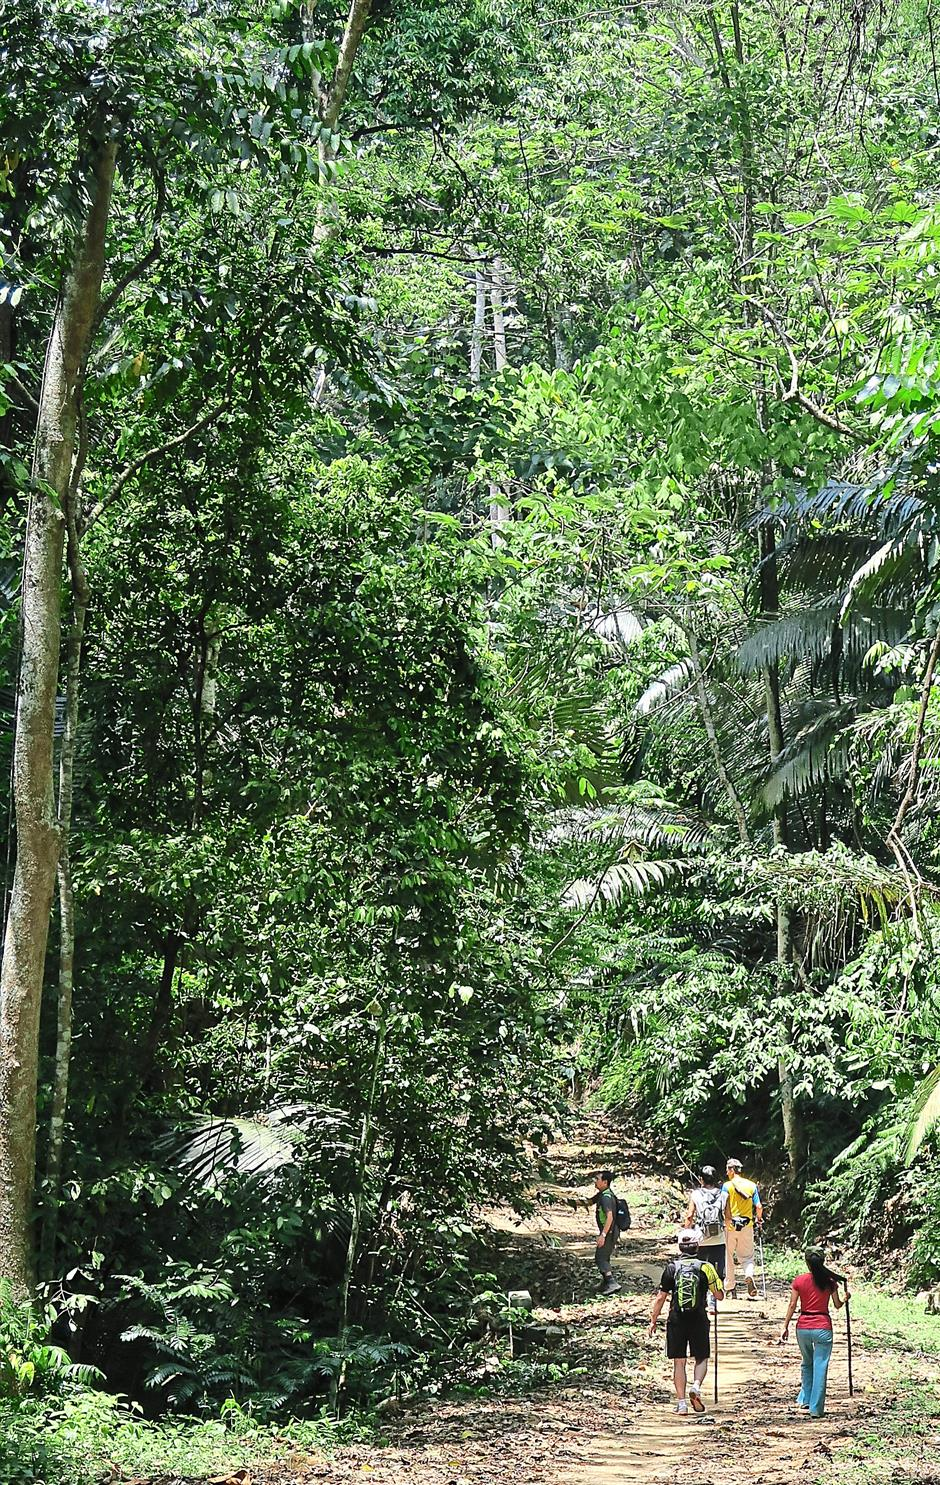 The canopy of trees lining Bukit Hari trail makes an effective shield against the sun.